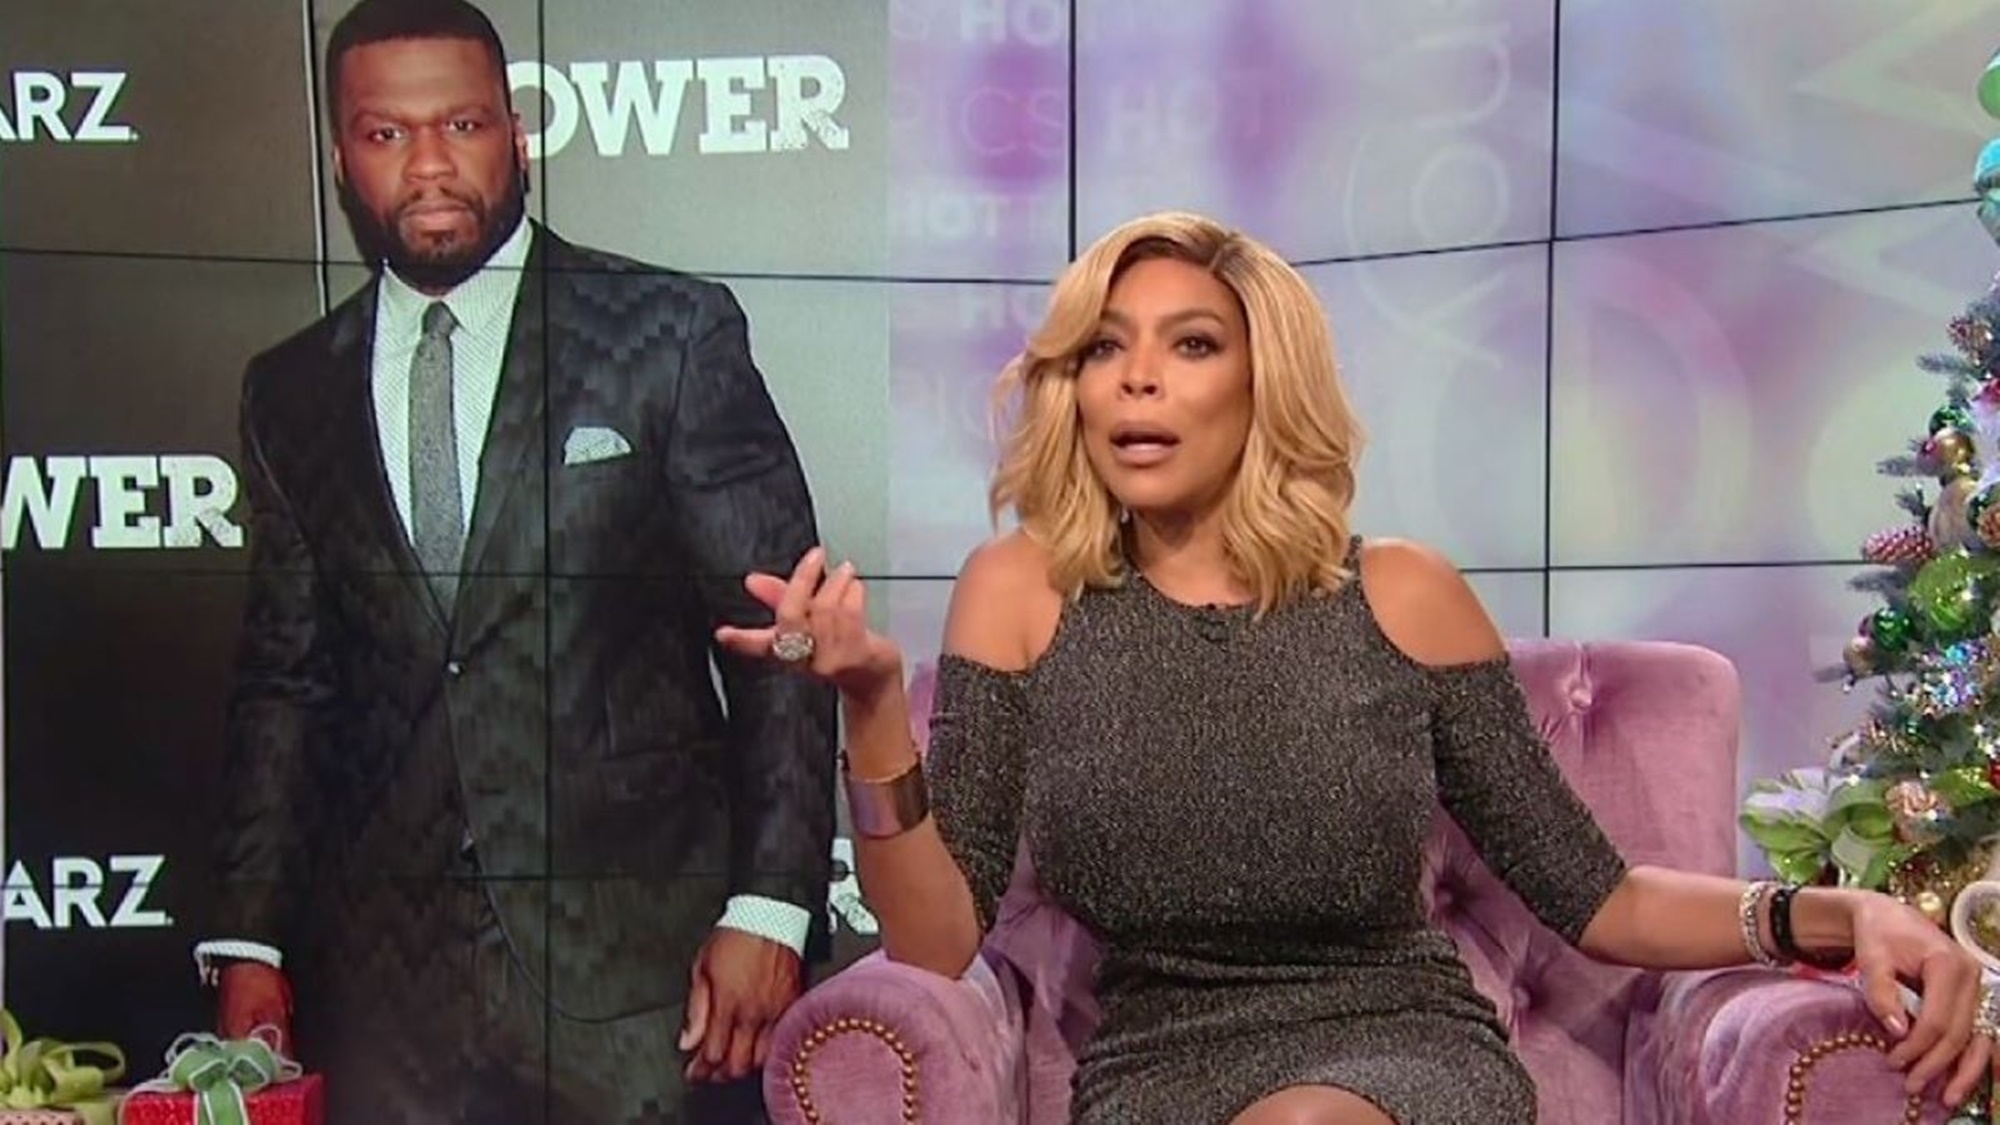 50 Cent Is Restless In His Shade: He Slams Wendy Williams Hard Ahead Of New Year's Eve